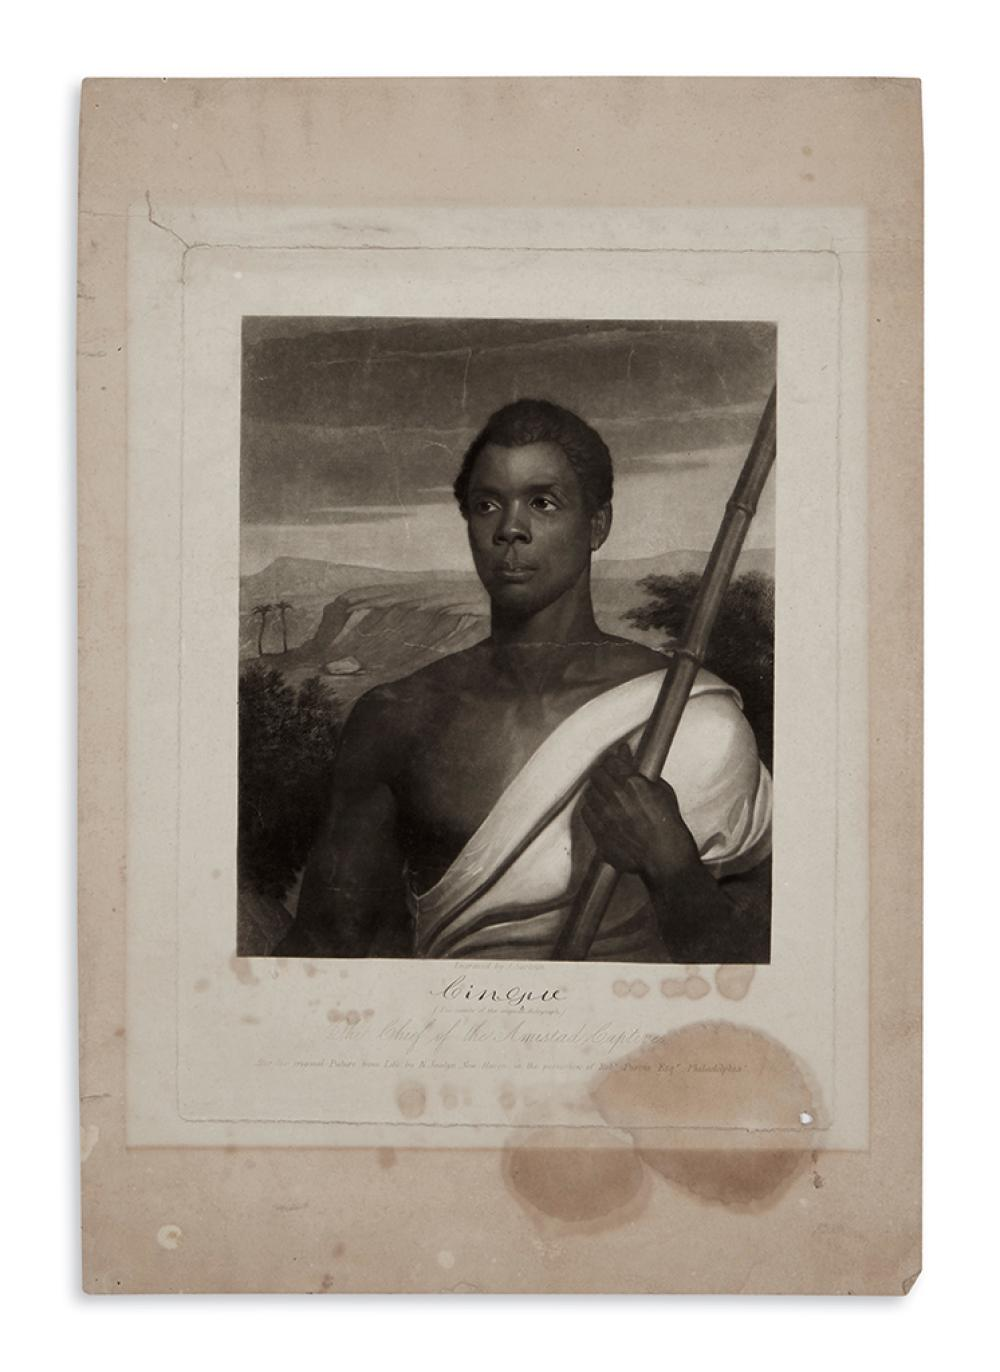 (SLAVERY AND ABOLITION.) Sartain, John, engraver. Cinque, the Chief of the Amistad Captives.